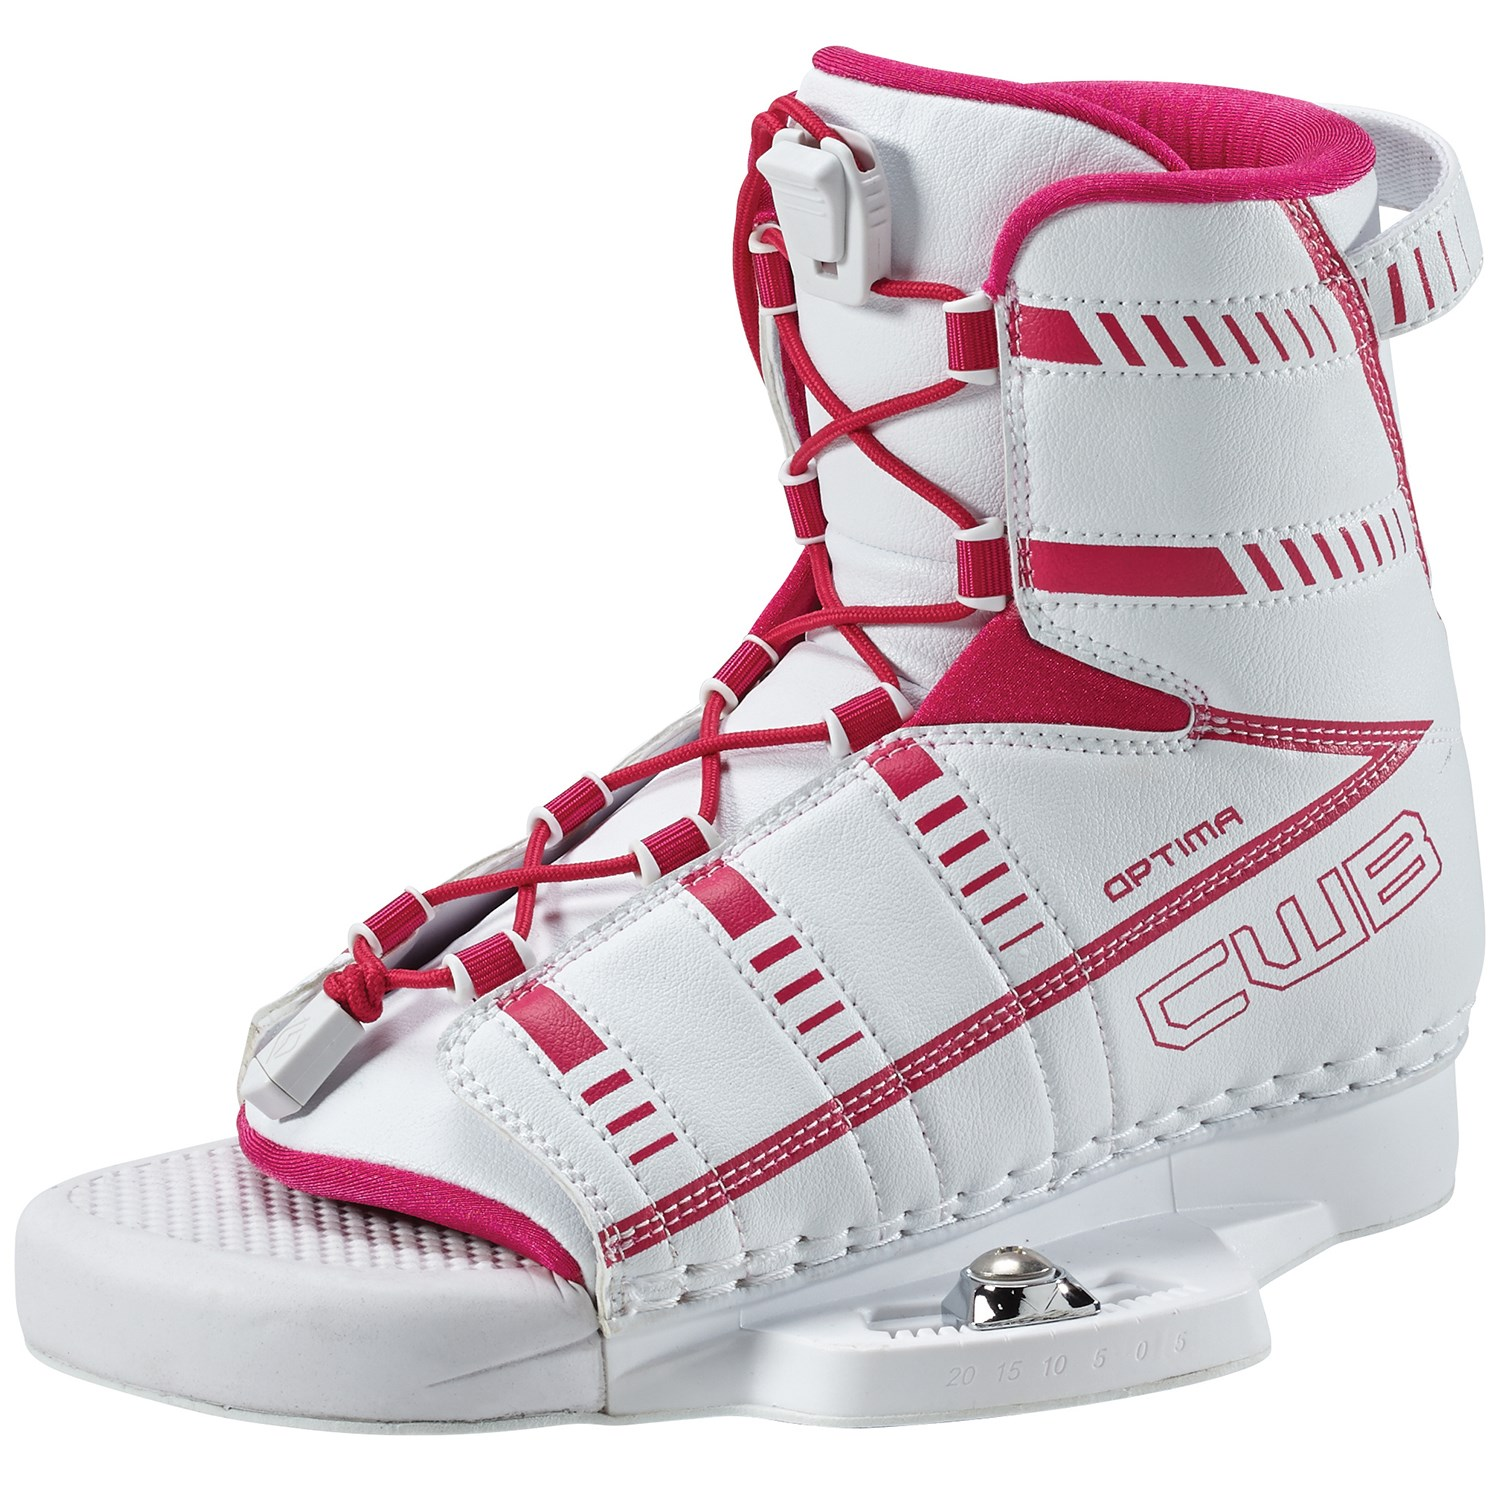 cwb-optima-wakeboard-bindings-women-s-2015-l-xl